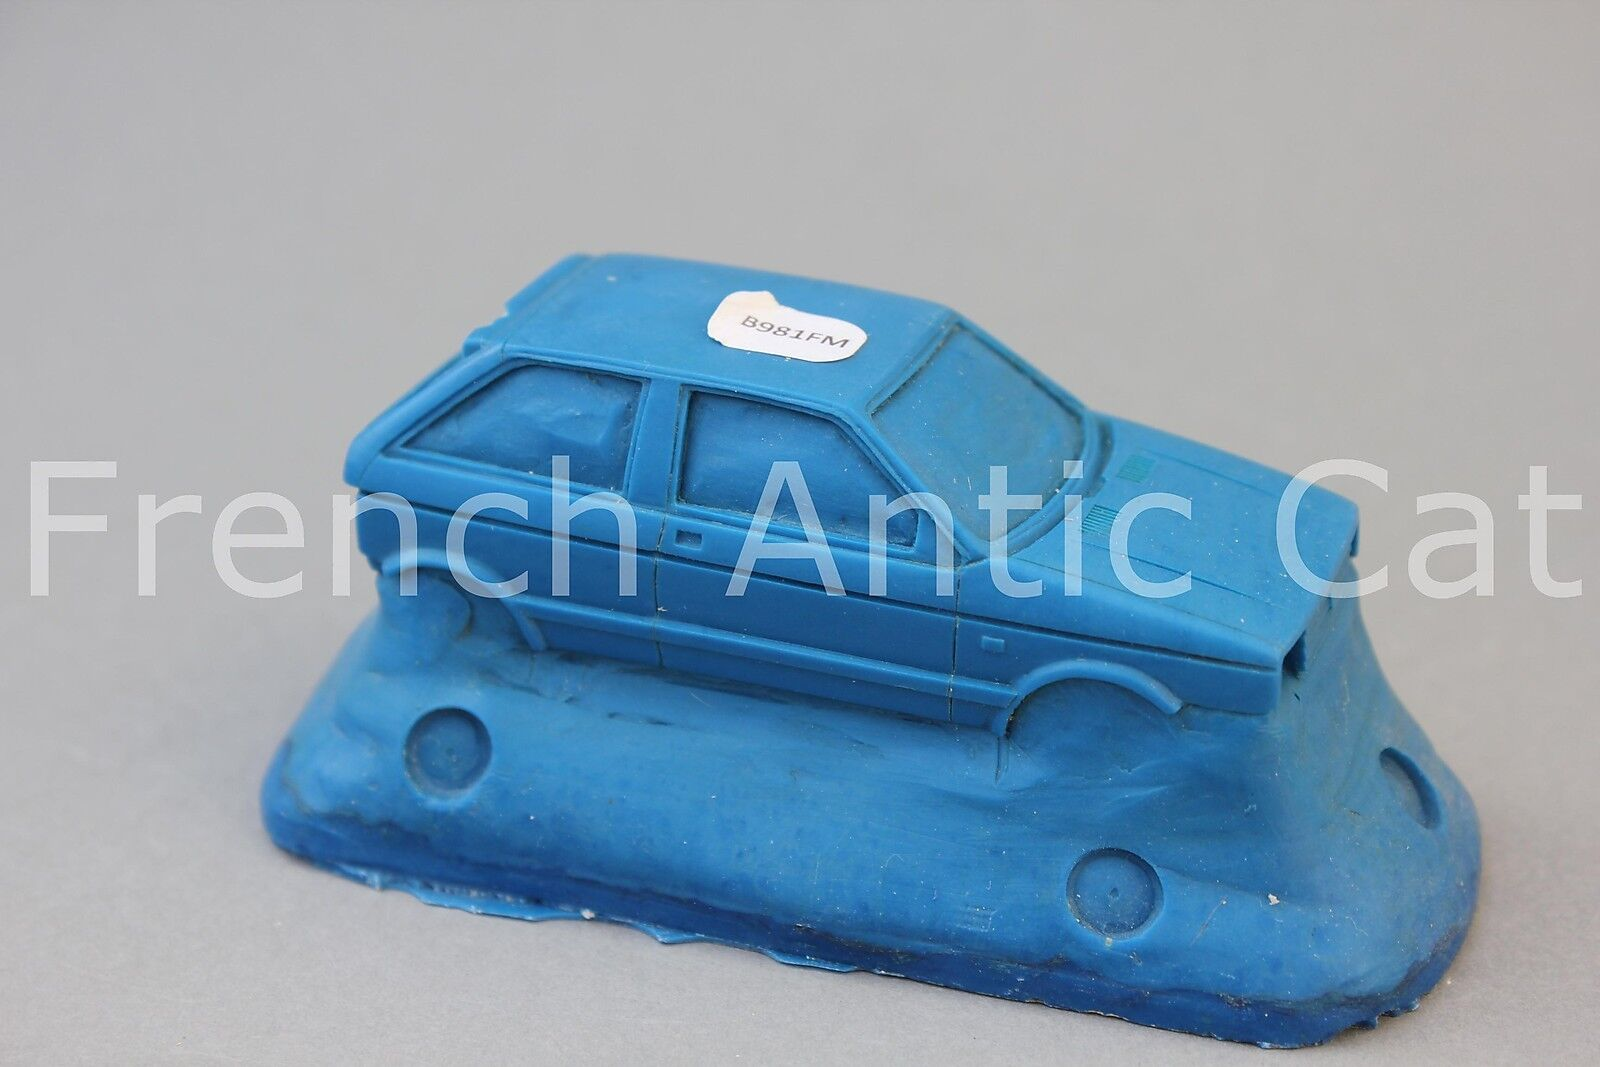 RARE Matrix Modele RESIN SEAT IBIZA 1 43 HECO Models Car Decoration FM